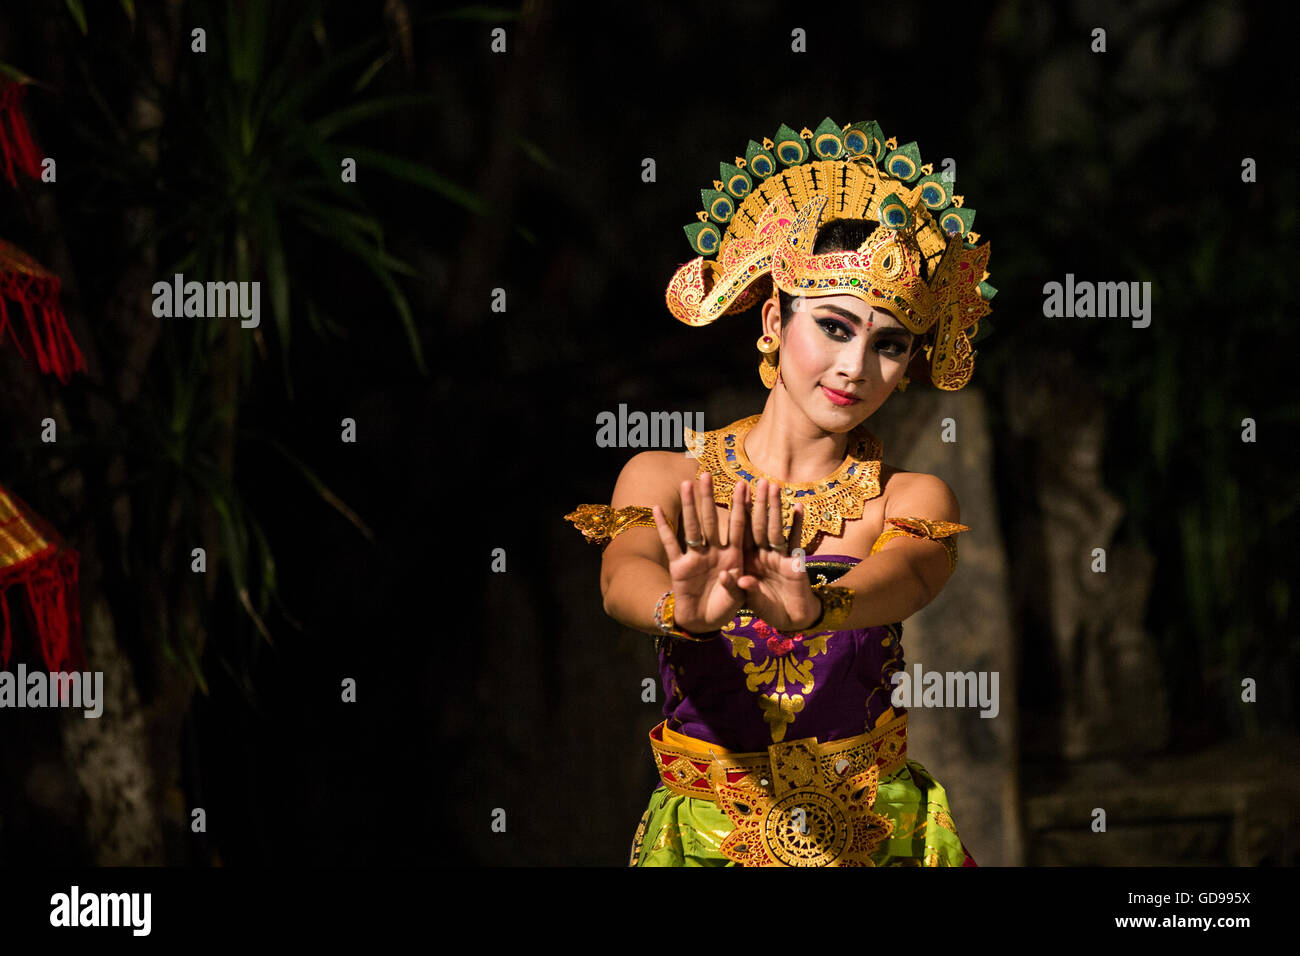 bali dancer in traditional